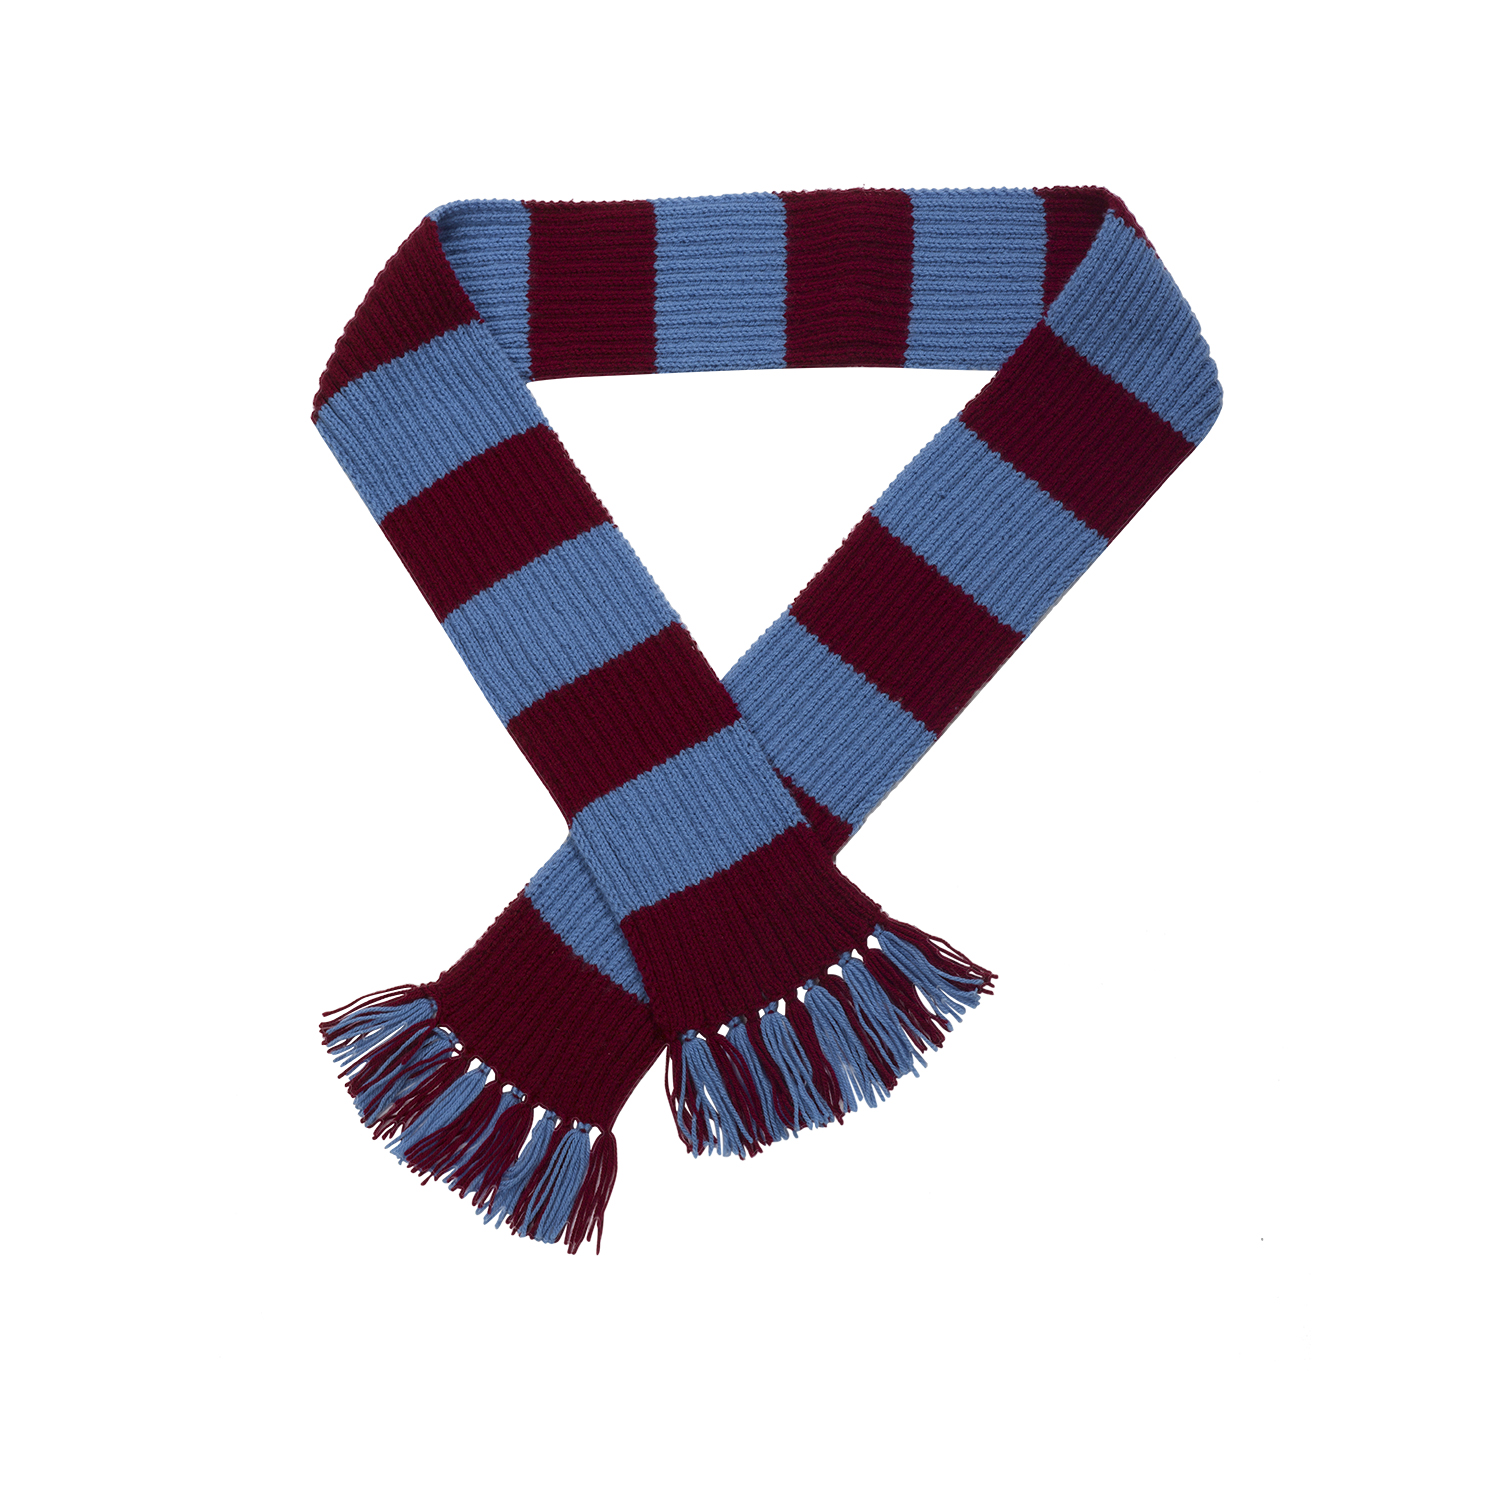 College Striped Scarf Knitting Pattern: Easy ways to dress up plain ...